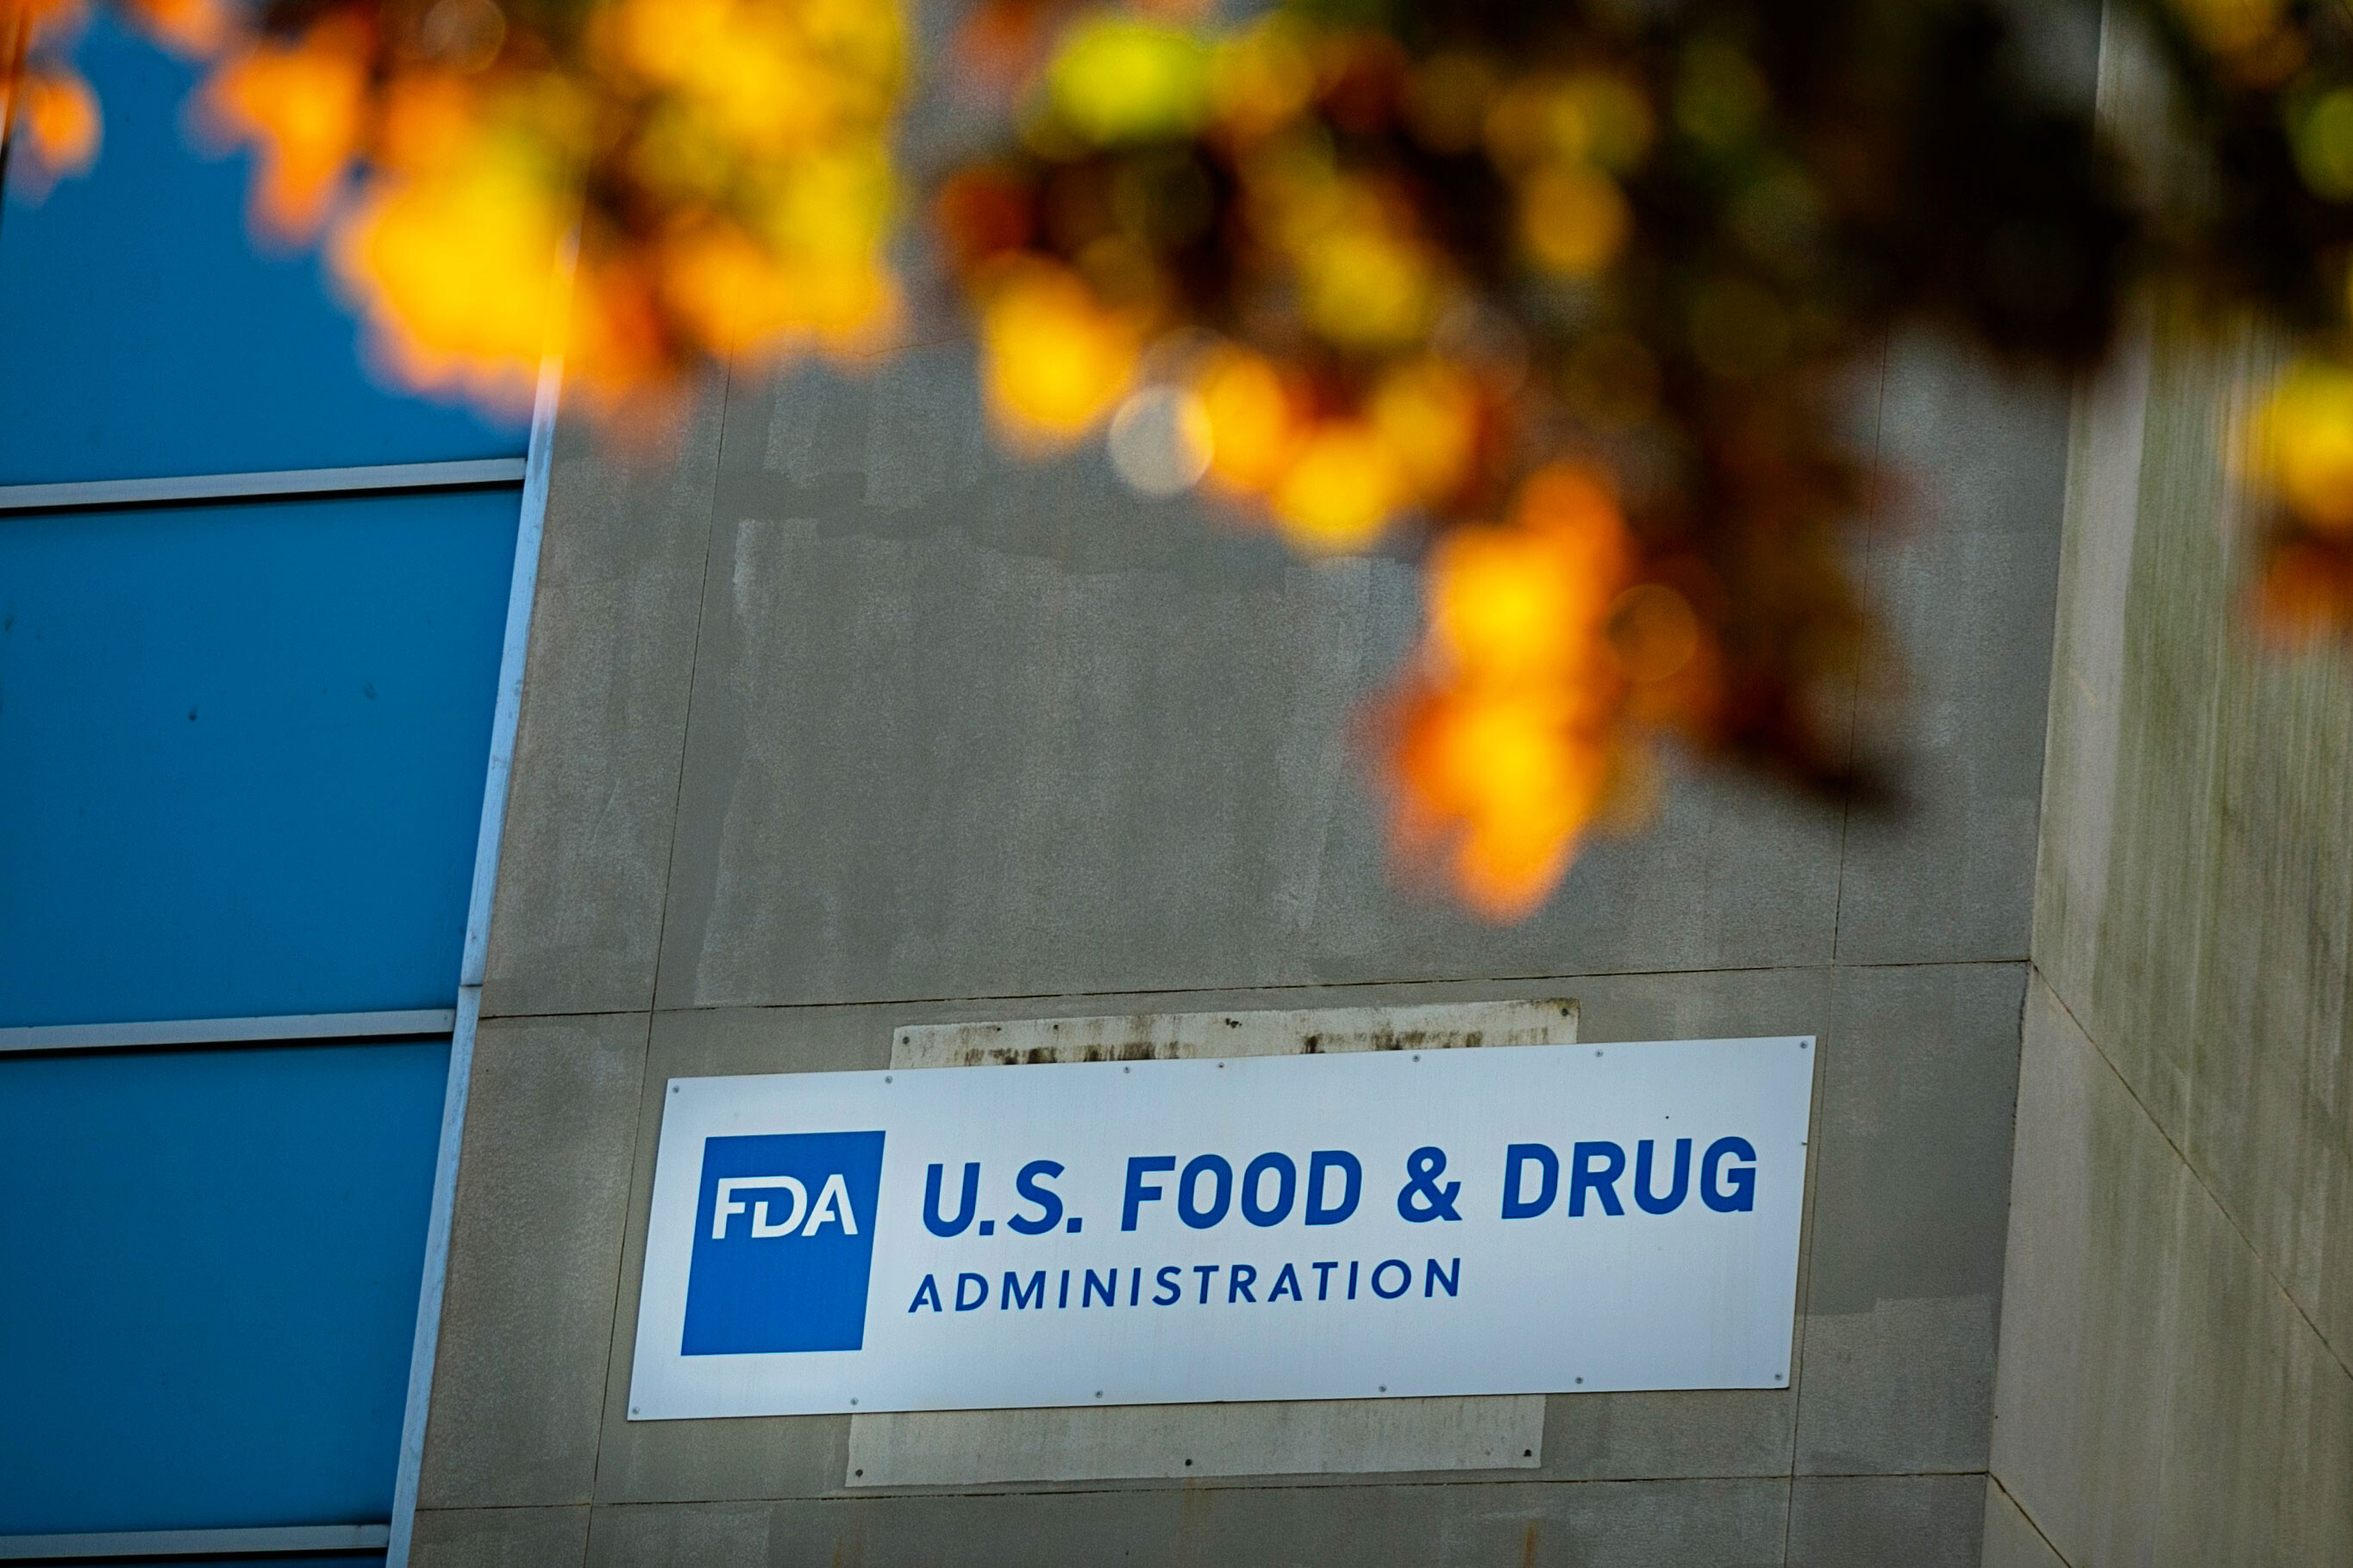 Ready-to-eat spices and food additives exposed to widespread rodent infestation were seized by the FDA